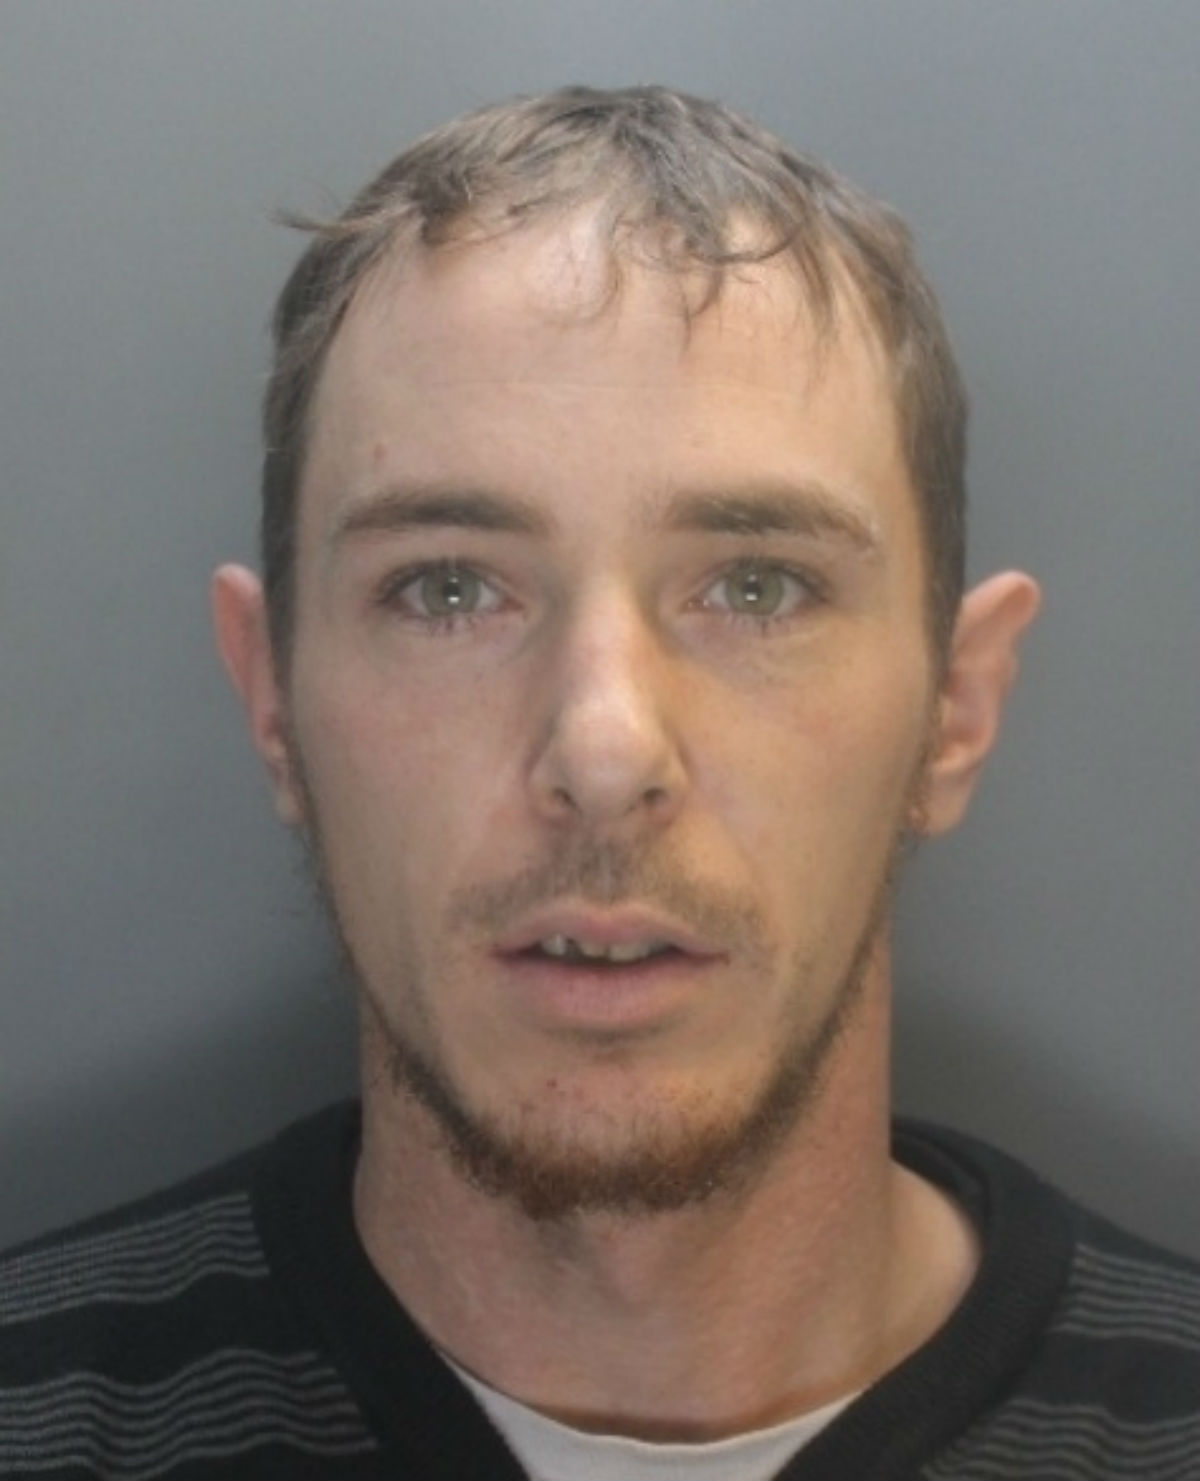 Stephen Wilkinson pleaded guilty to 21 counts of theft from a petrol station